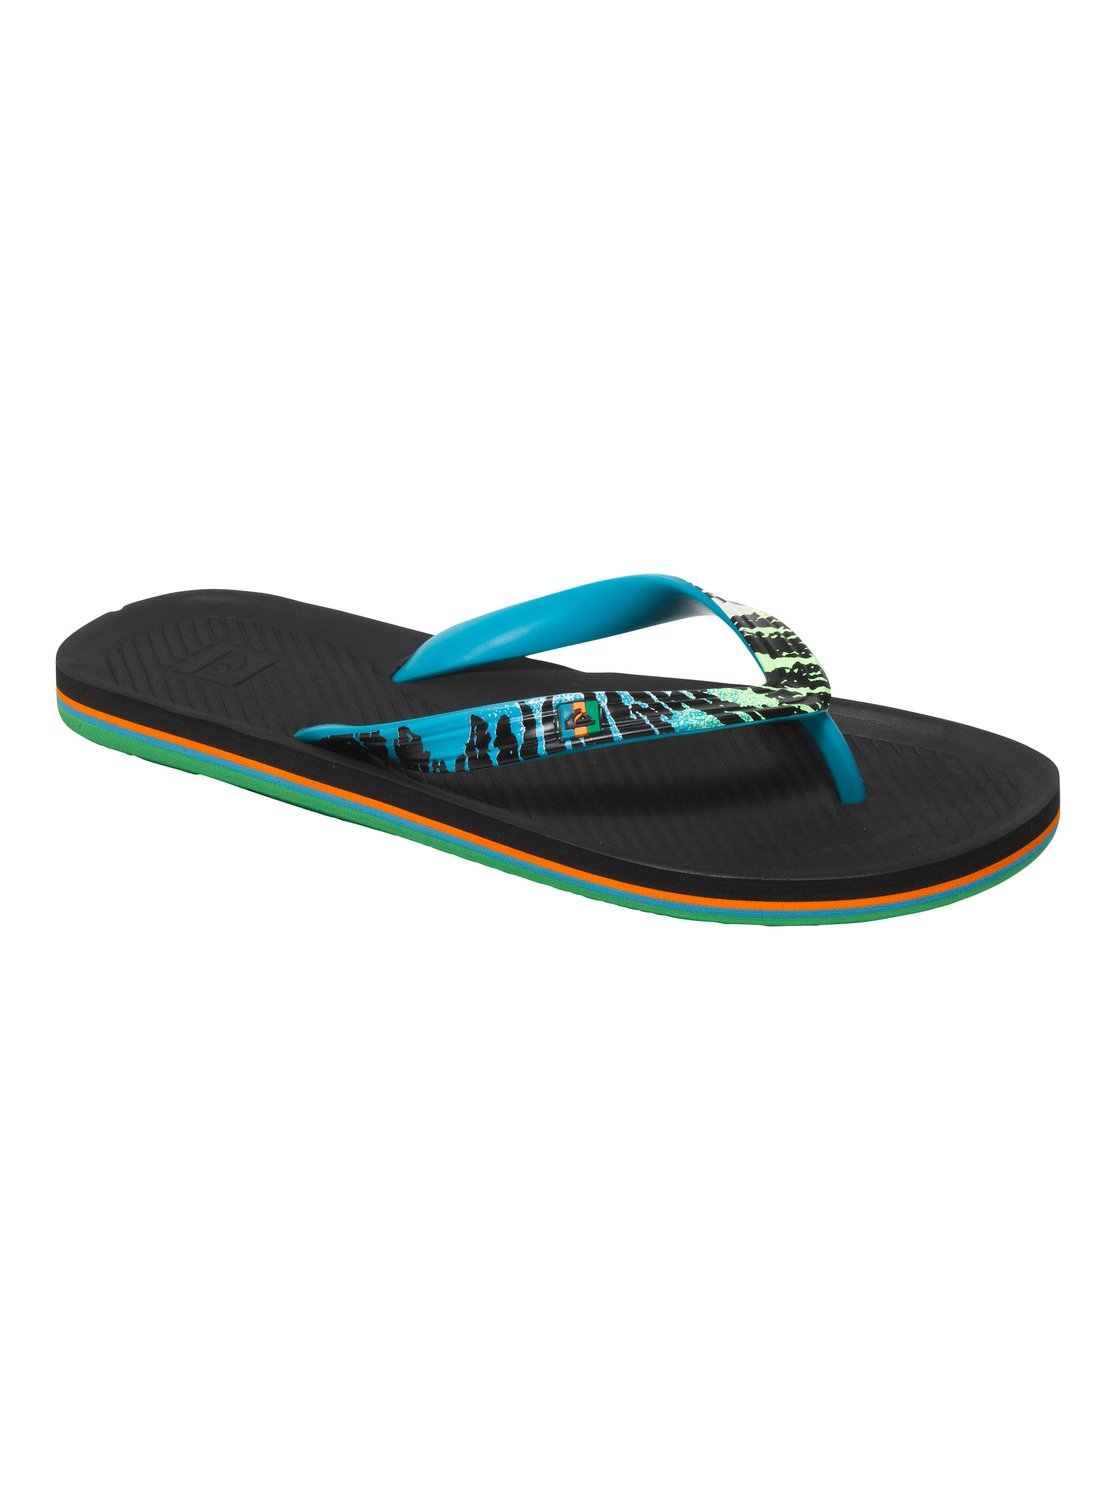 haleiwa men E1126 - quiksilver haleiwa plus sandals / flip-flops - new mens 9 brown - #29185 - $2059 item condition new with tags retail price $40 us shoe size 9 uk shoe size 8 eur shoe size 42 cm shoe size na product detailswater-friendly synthetic nubuck upper with laser perforationsfinely woven nylon toe post.